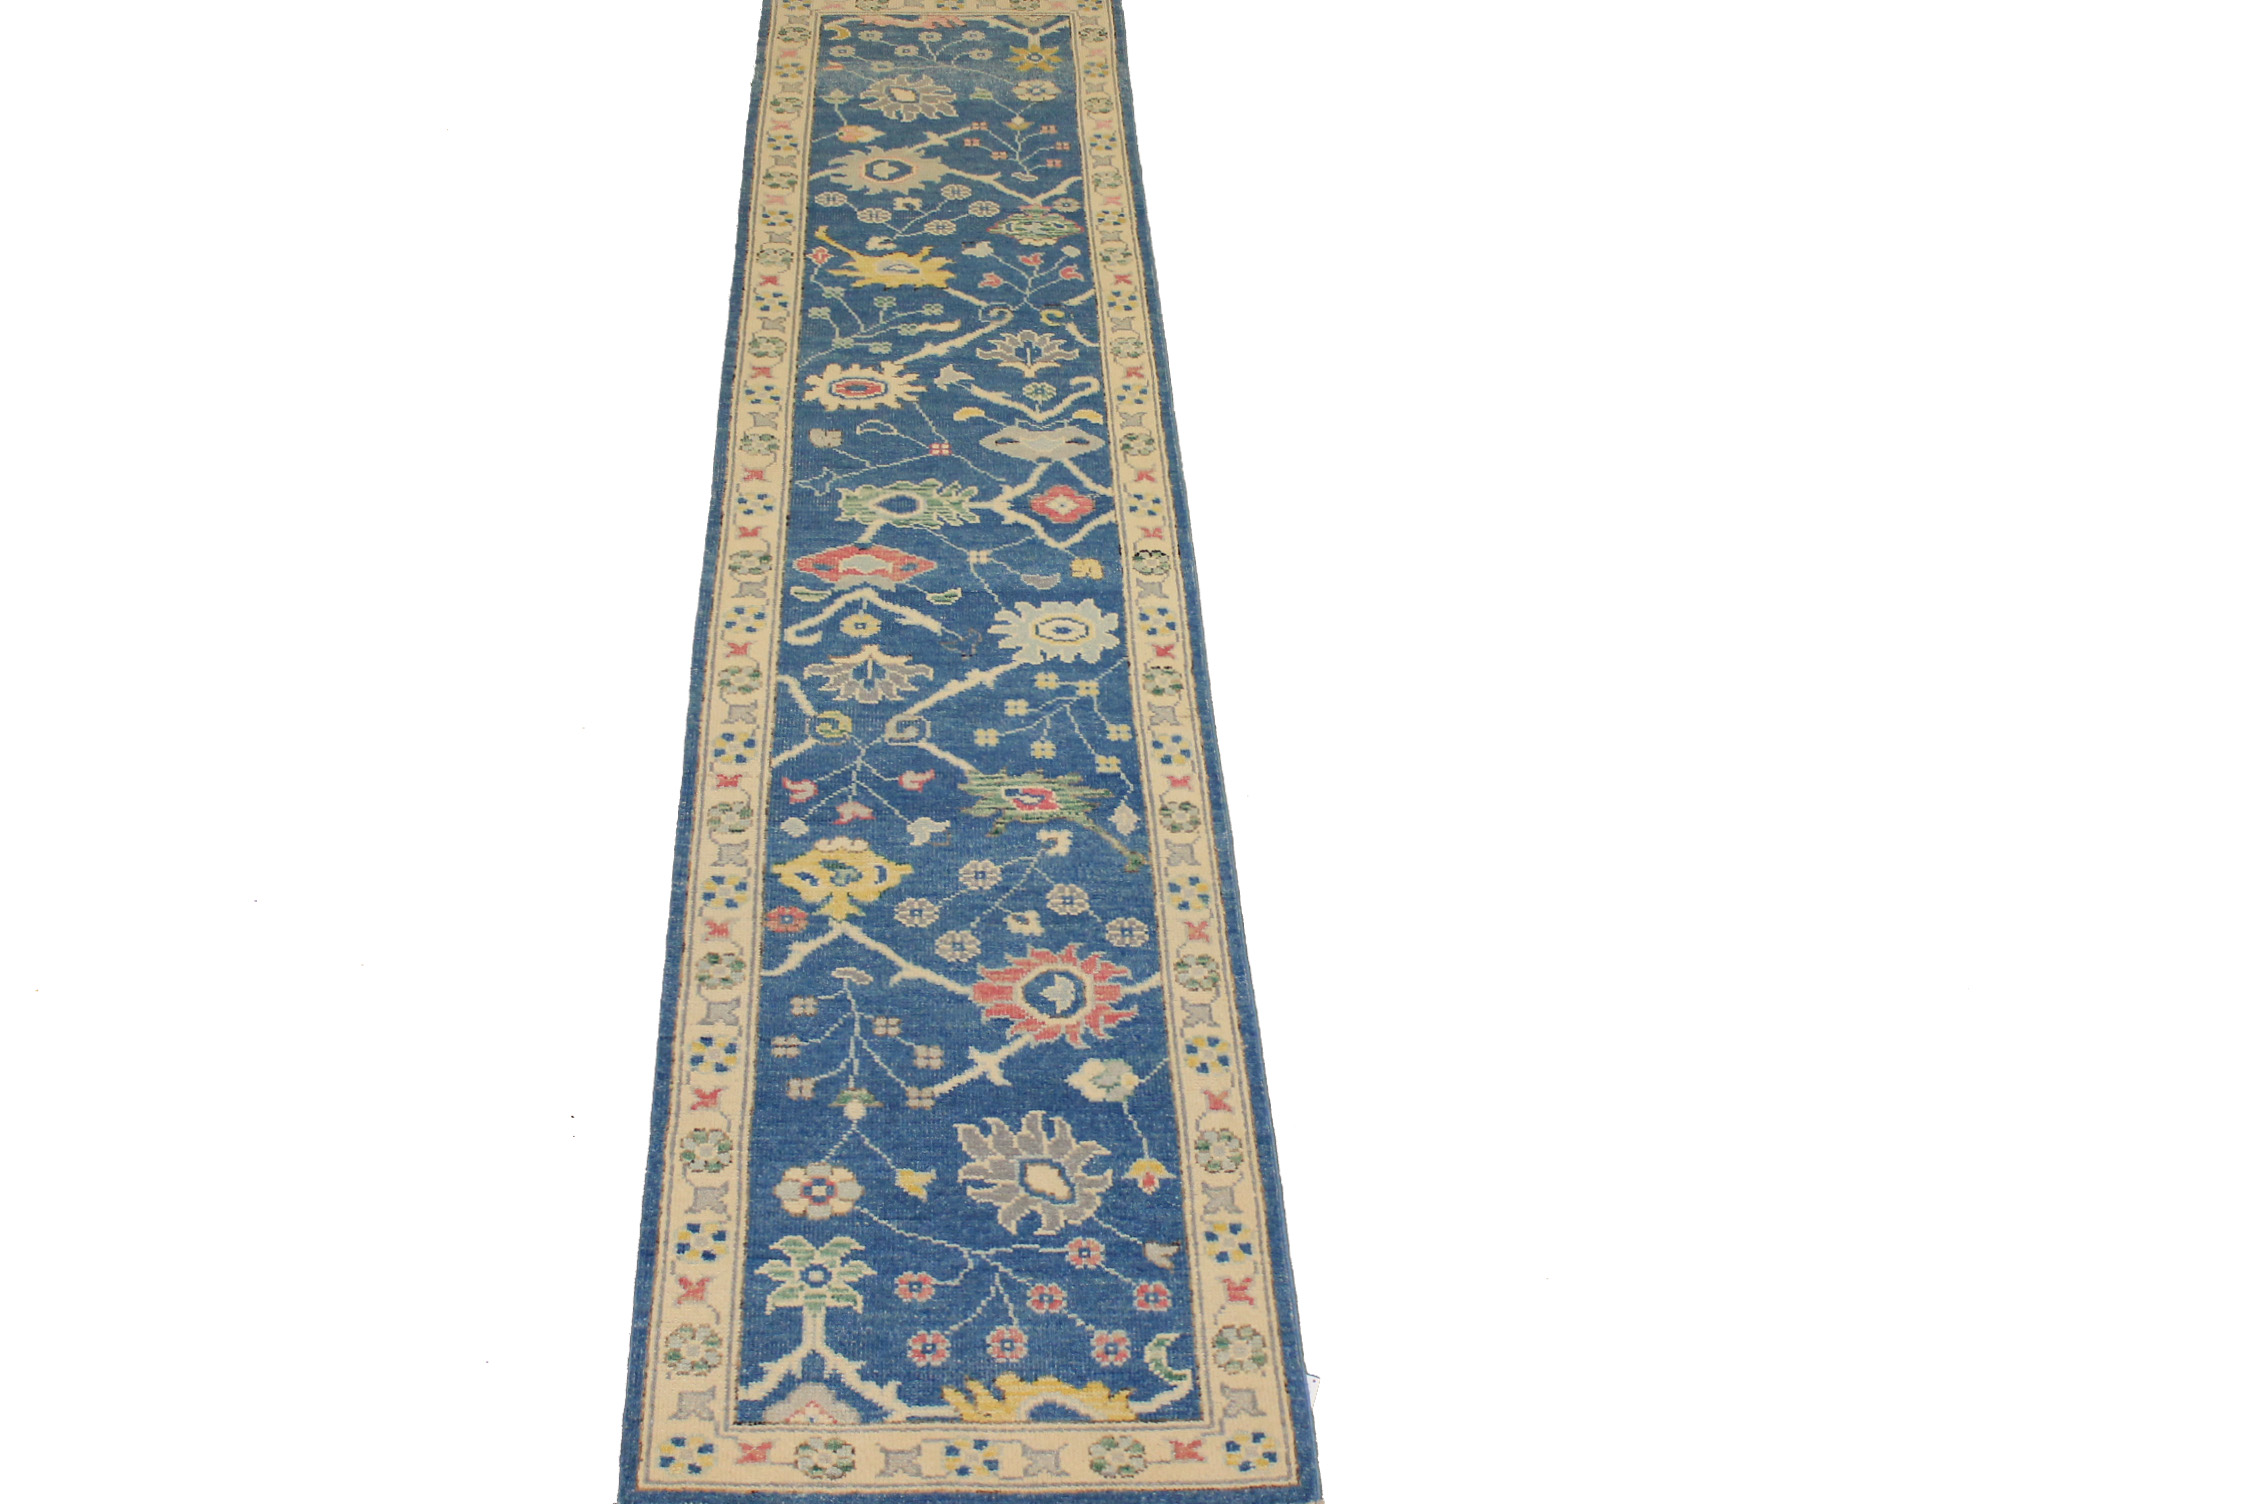 12 ft. Runner Oushak Hand Knotted Wool Area Rug - MR024425